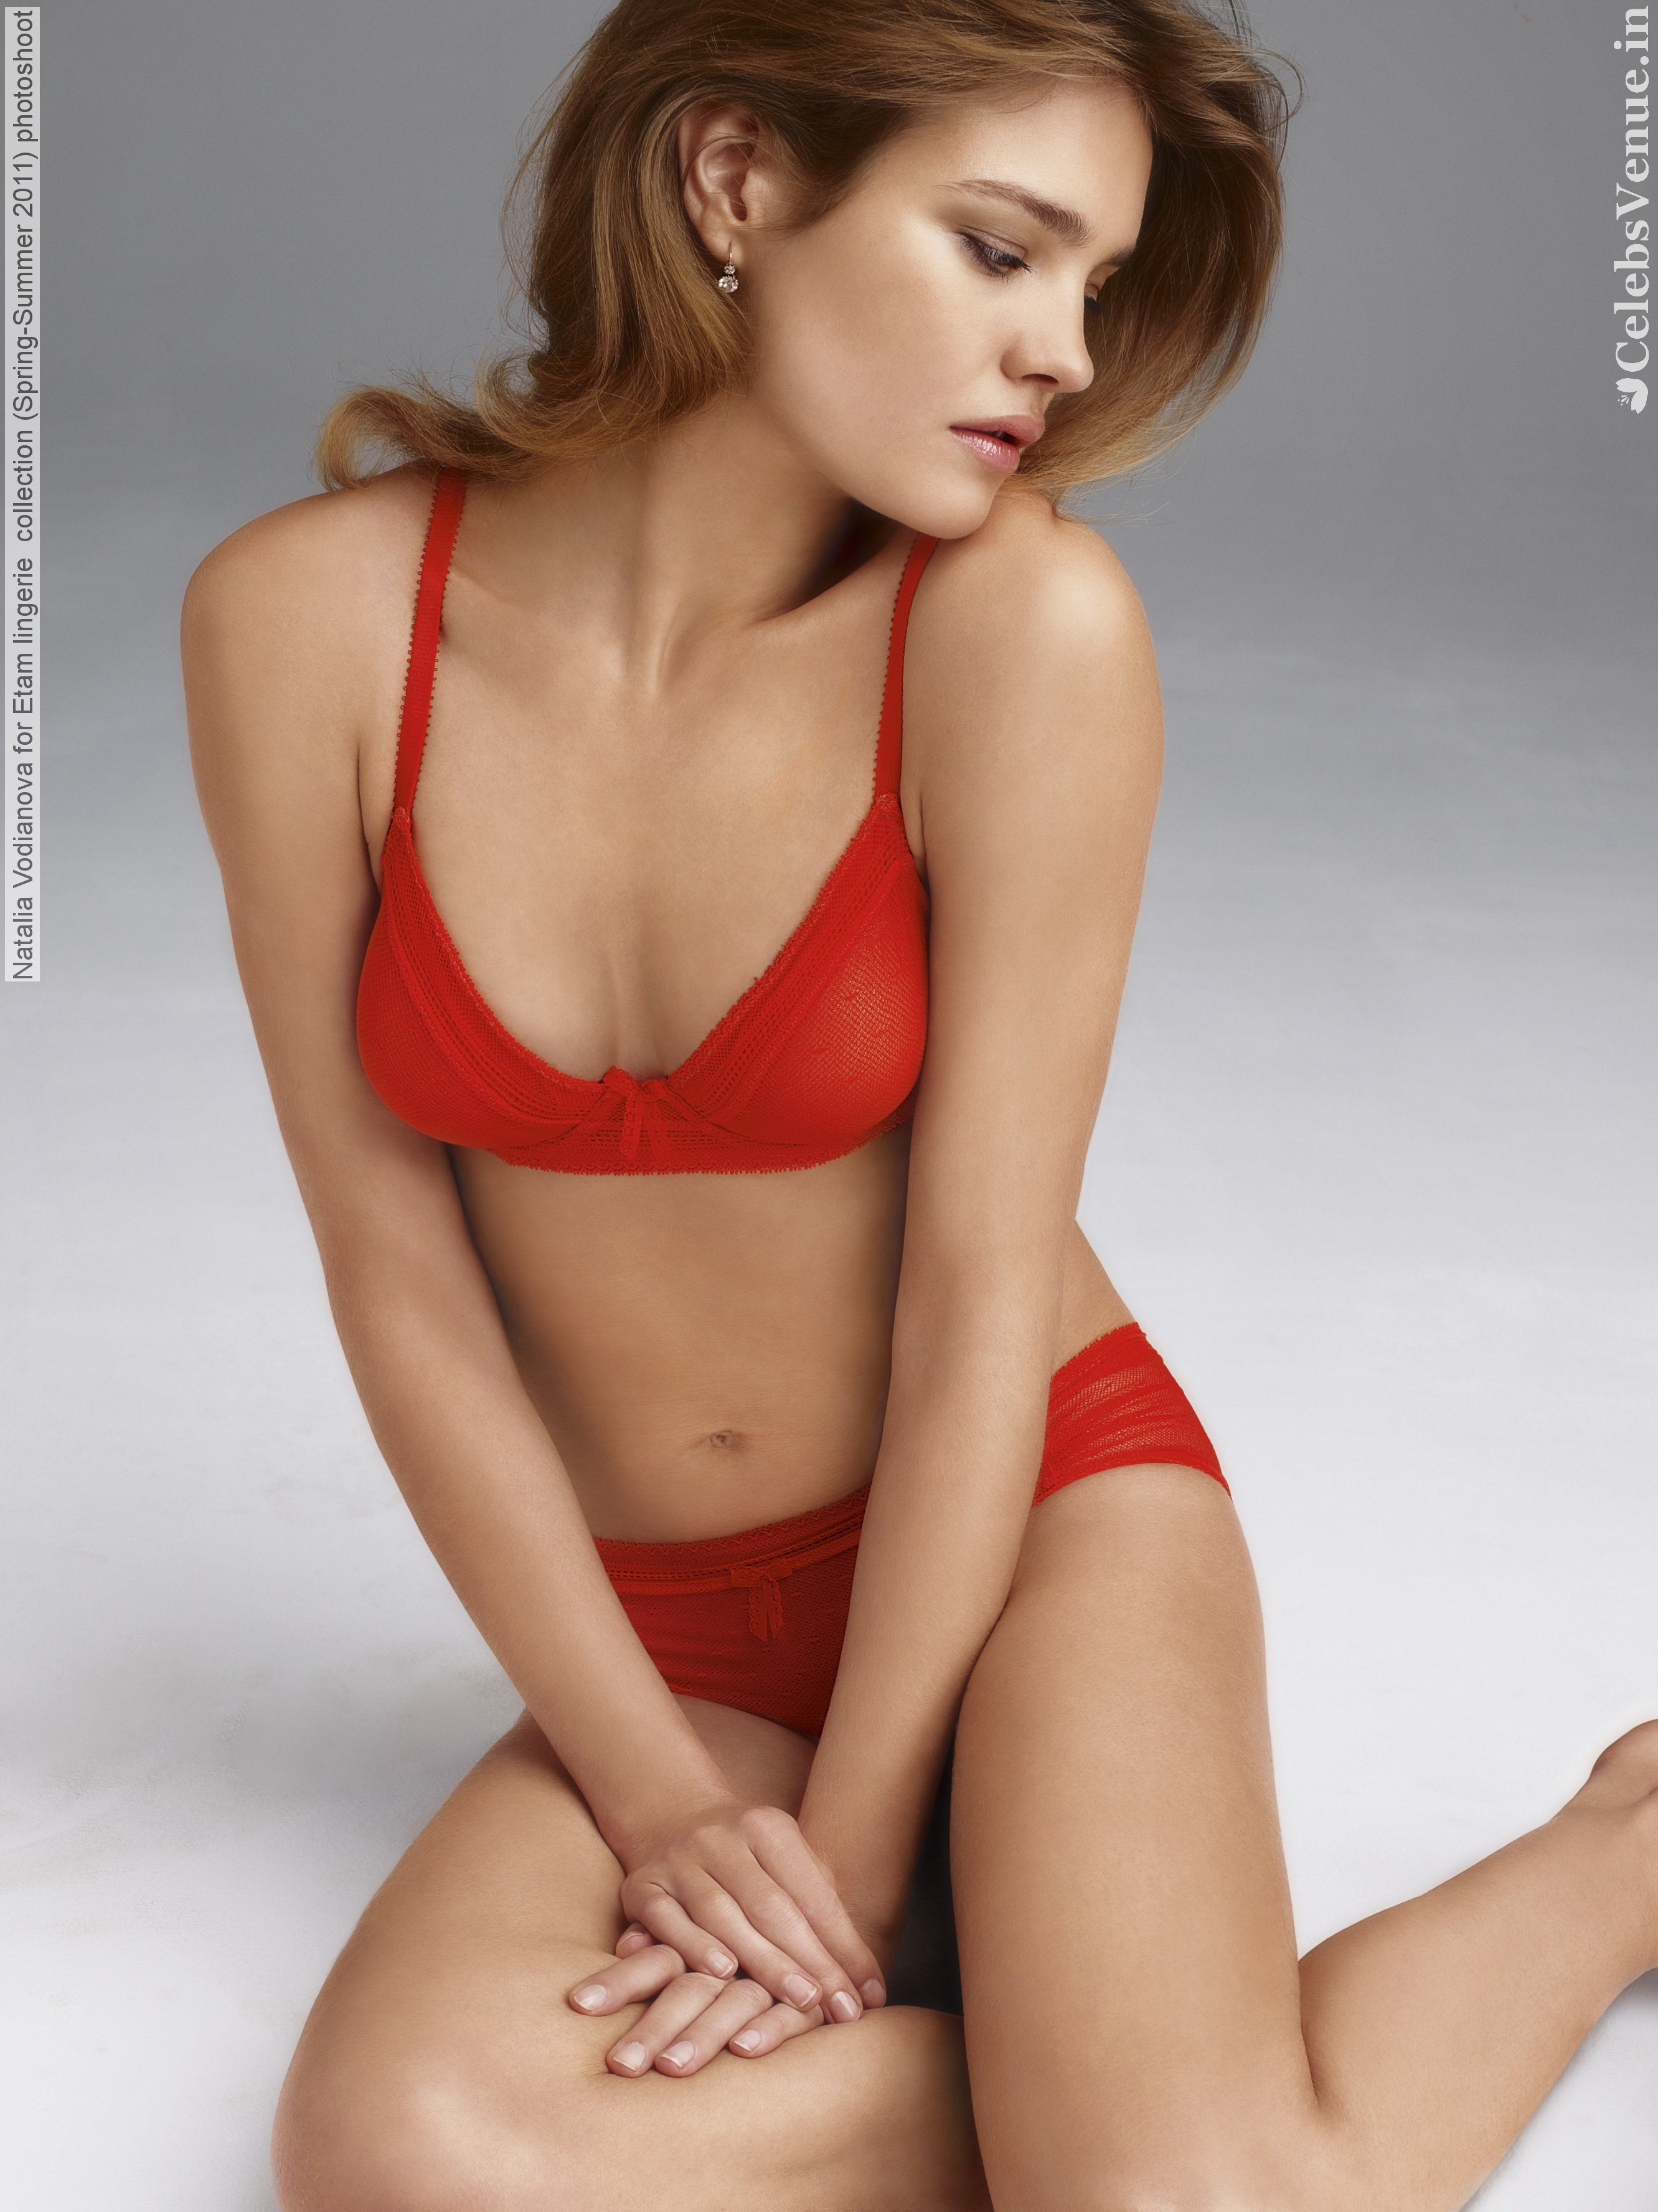 Natalia Vodianova photo 2218 of 2705 pics, wallpaper ...